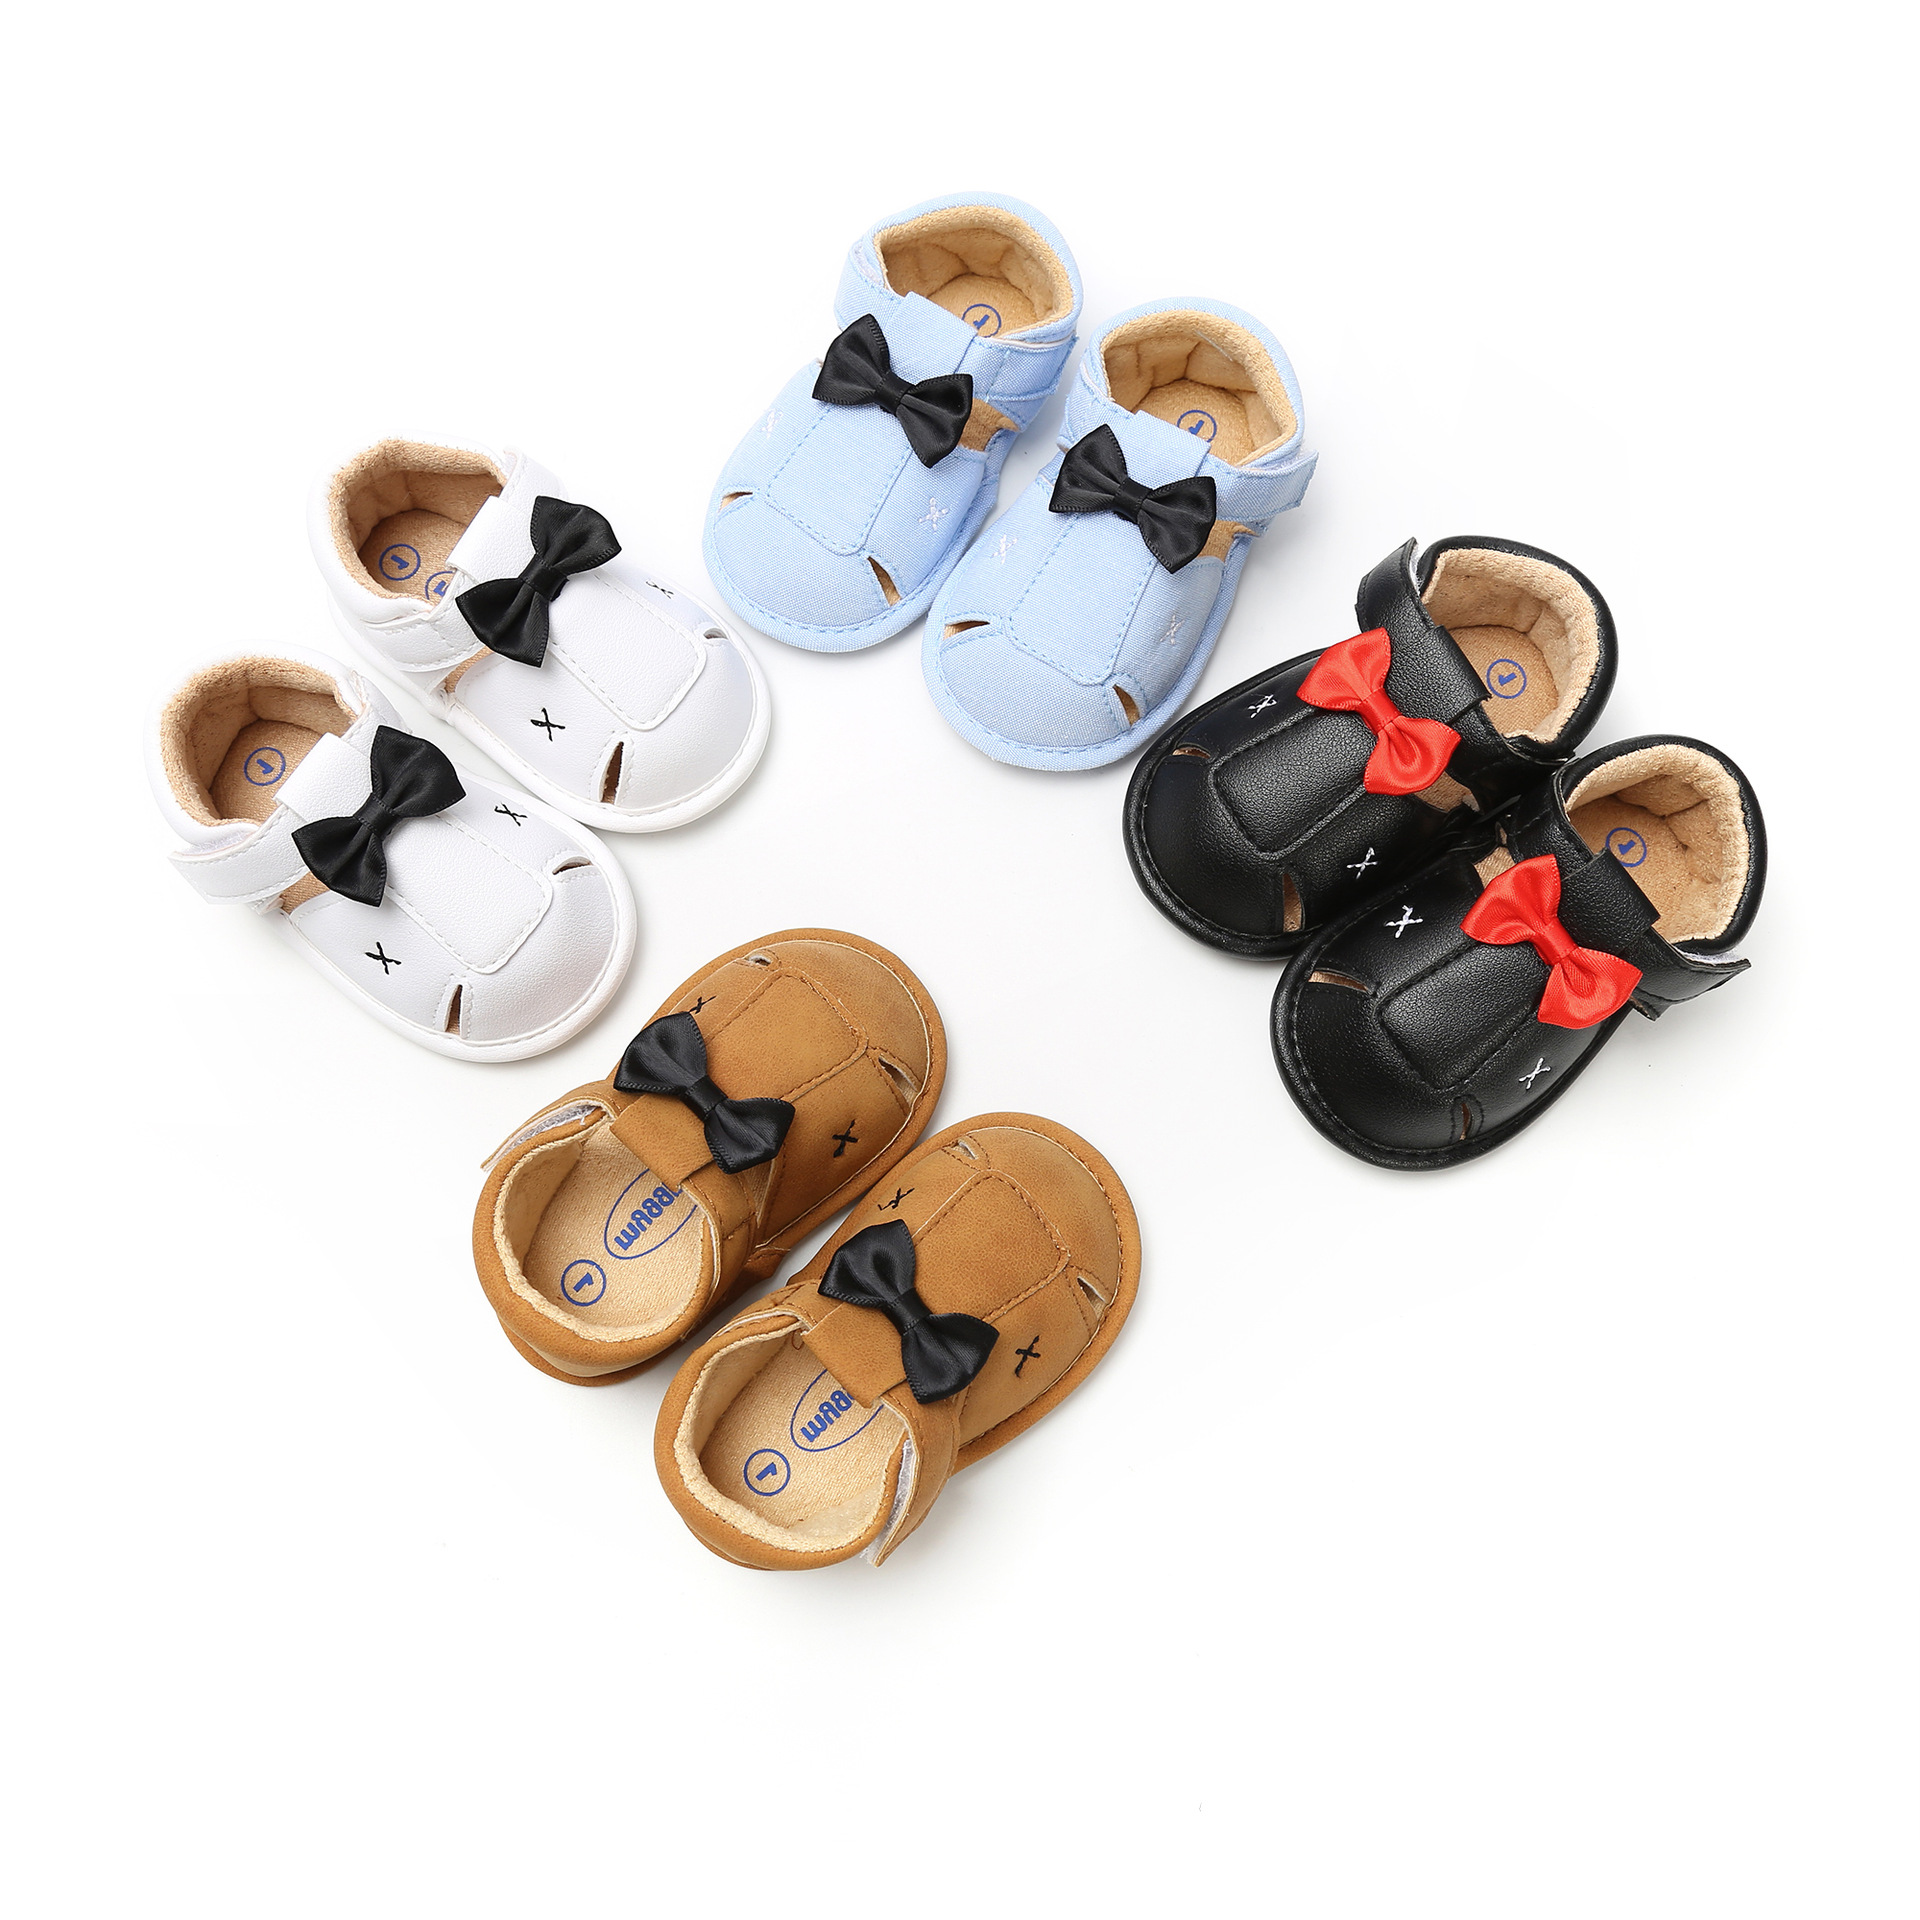 PU Leather Baby Sandals Summer Boy Shoes Infant Toddler Sandals For Girls Soft Sole Non-Slip Bowknot Newborn Sandal